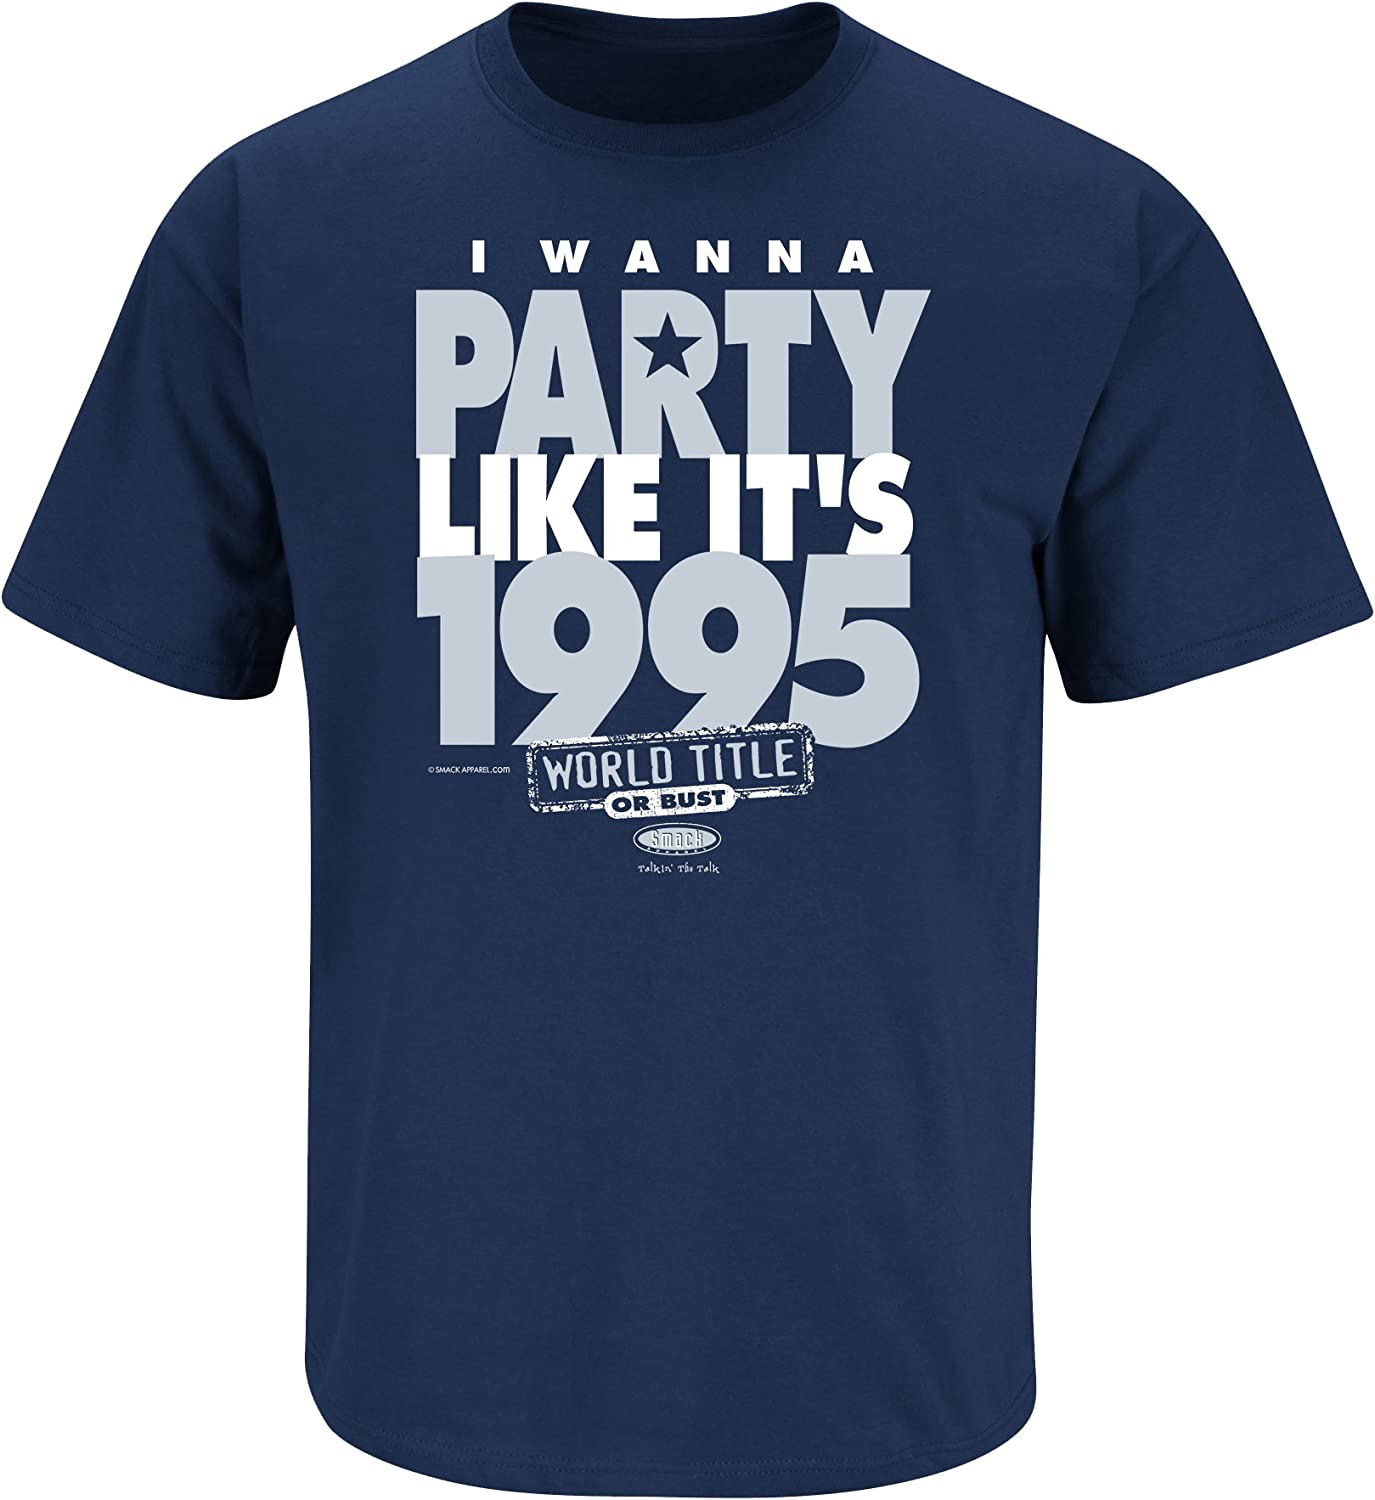 Smack Apparel Dallas Football Fans Sm-5X Silver and Blue Til The Day Im Through Navy T-Shirt